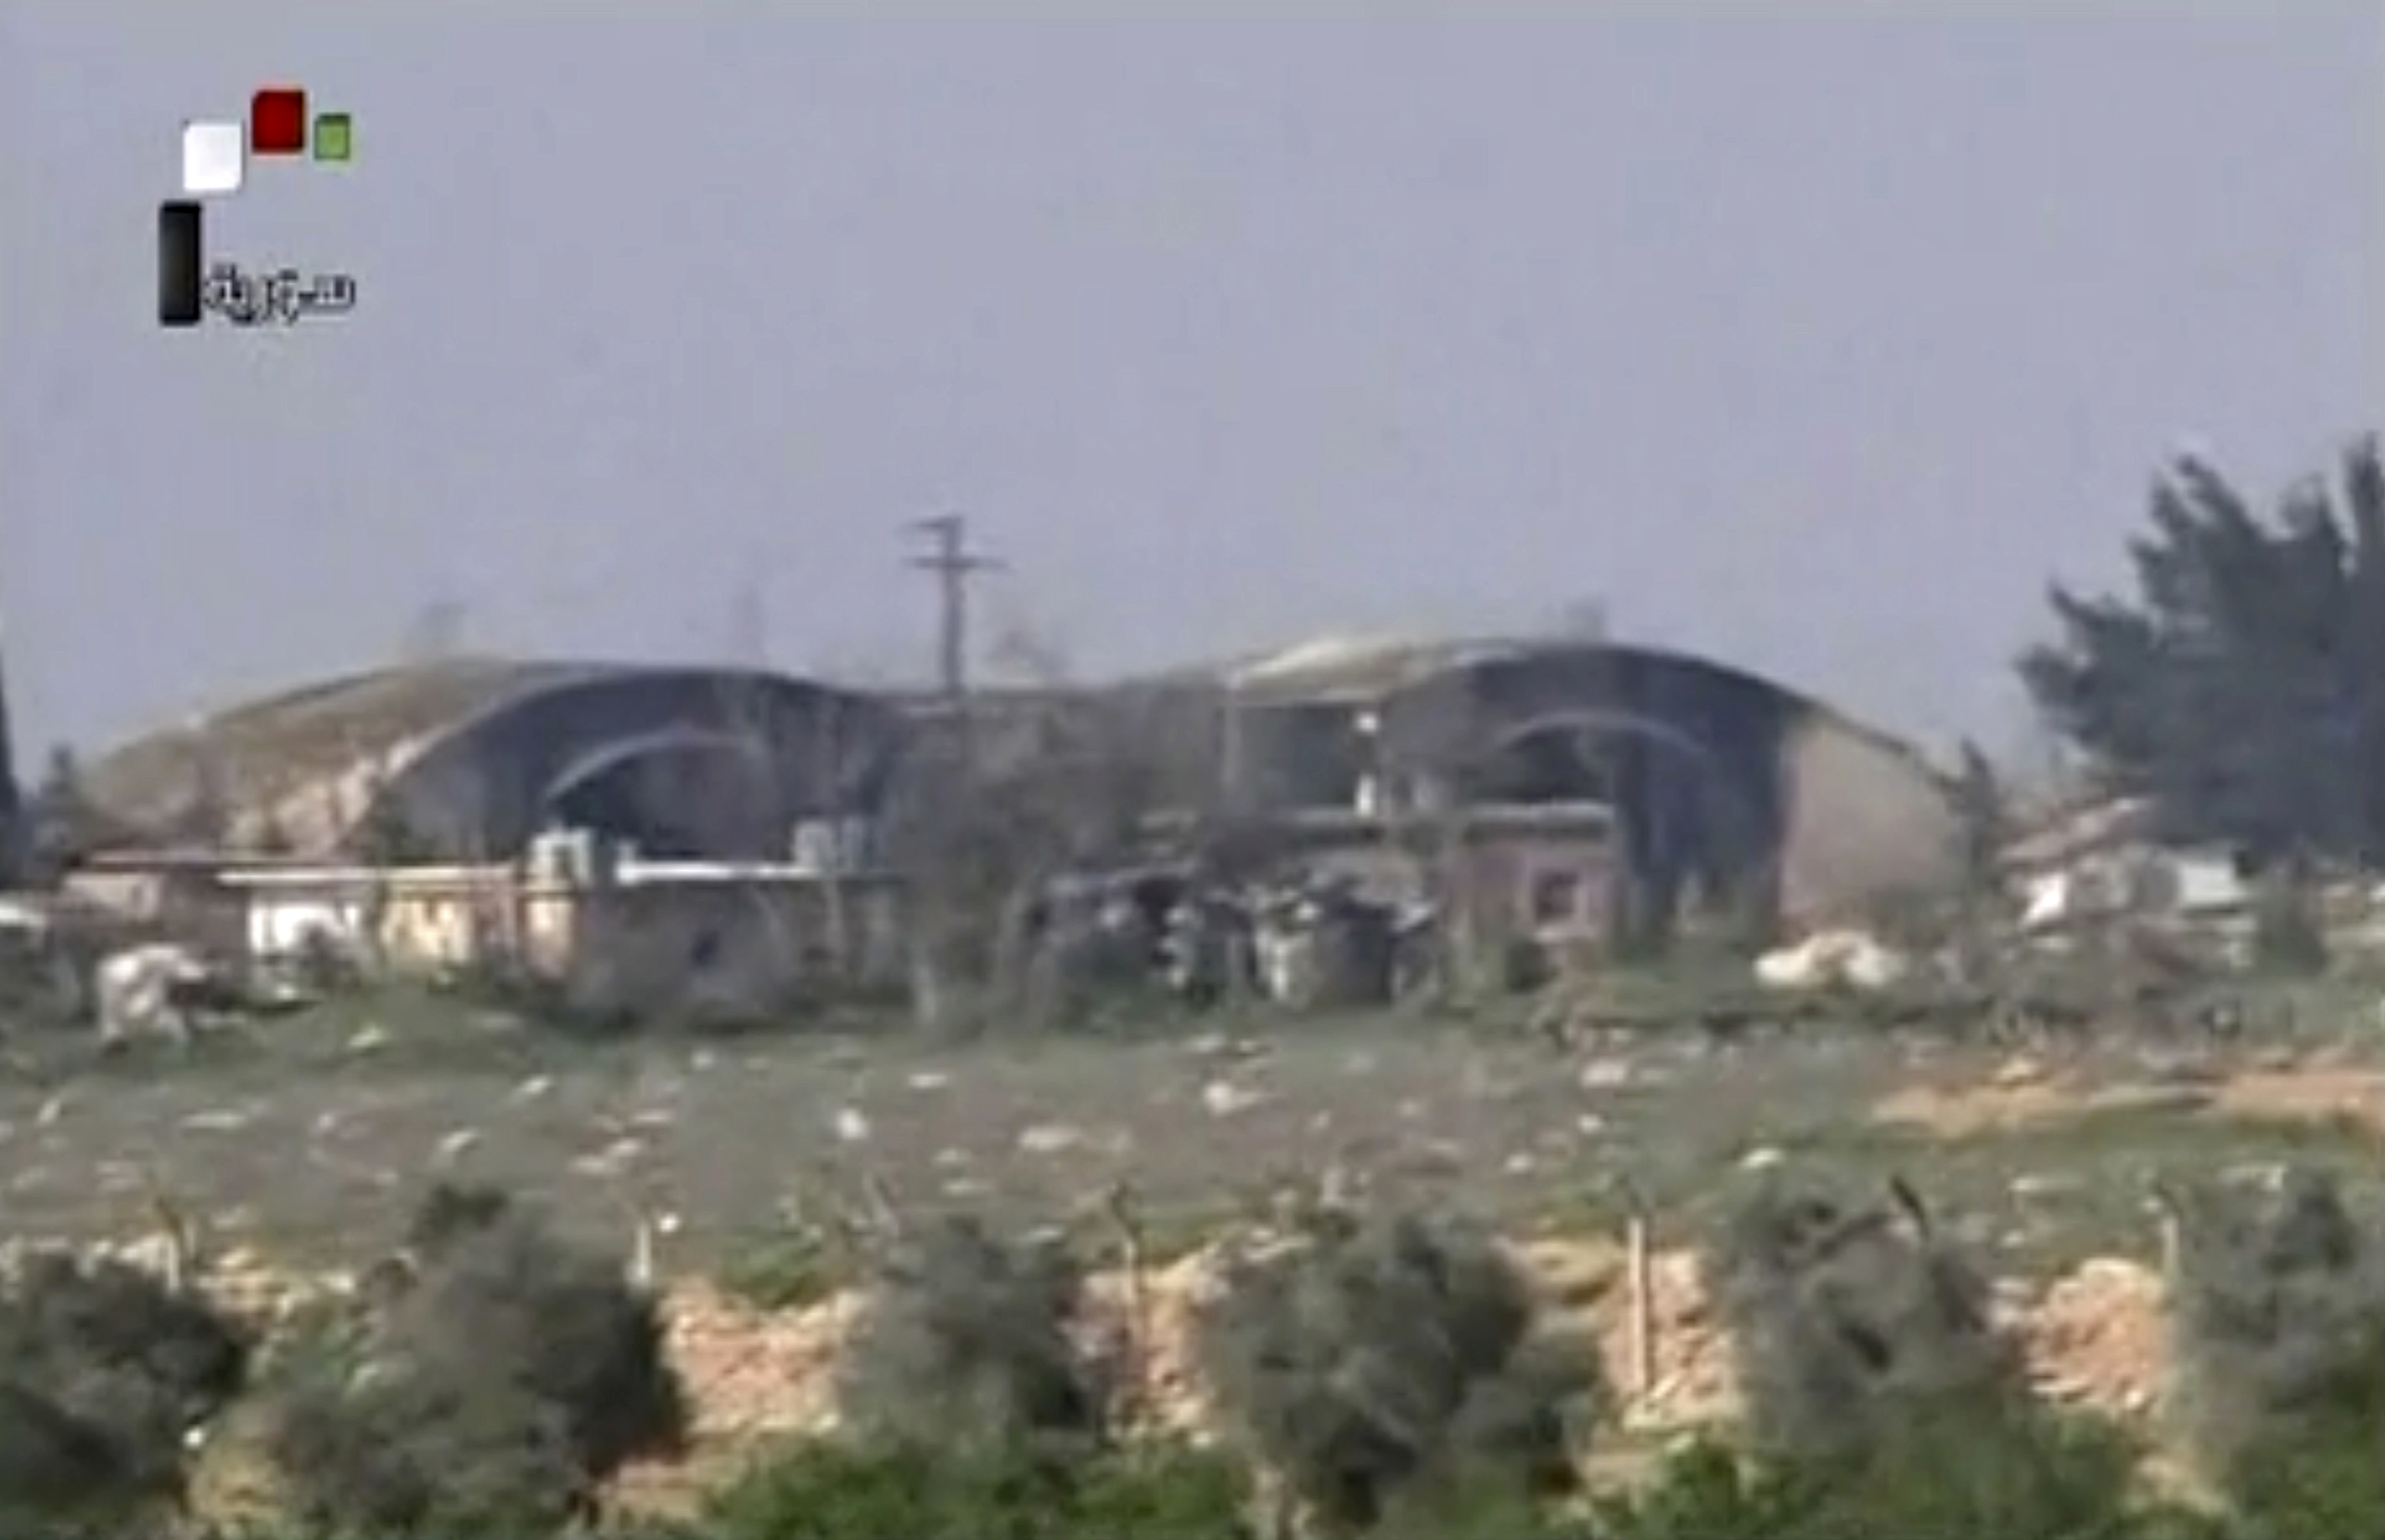 FILE - This frame grab from video provided April, 7, 2017, by official Syrian TV shows the burned and damaged hangars hit by U.S. Tomahawk missiles at the Shayrat air base southeast of Homs, Syria.